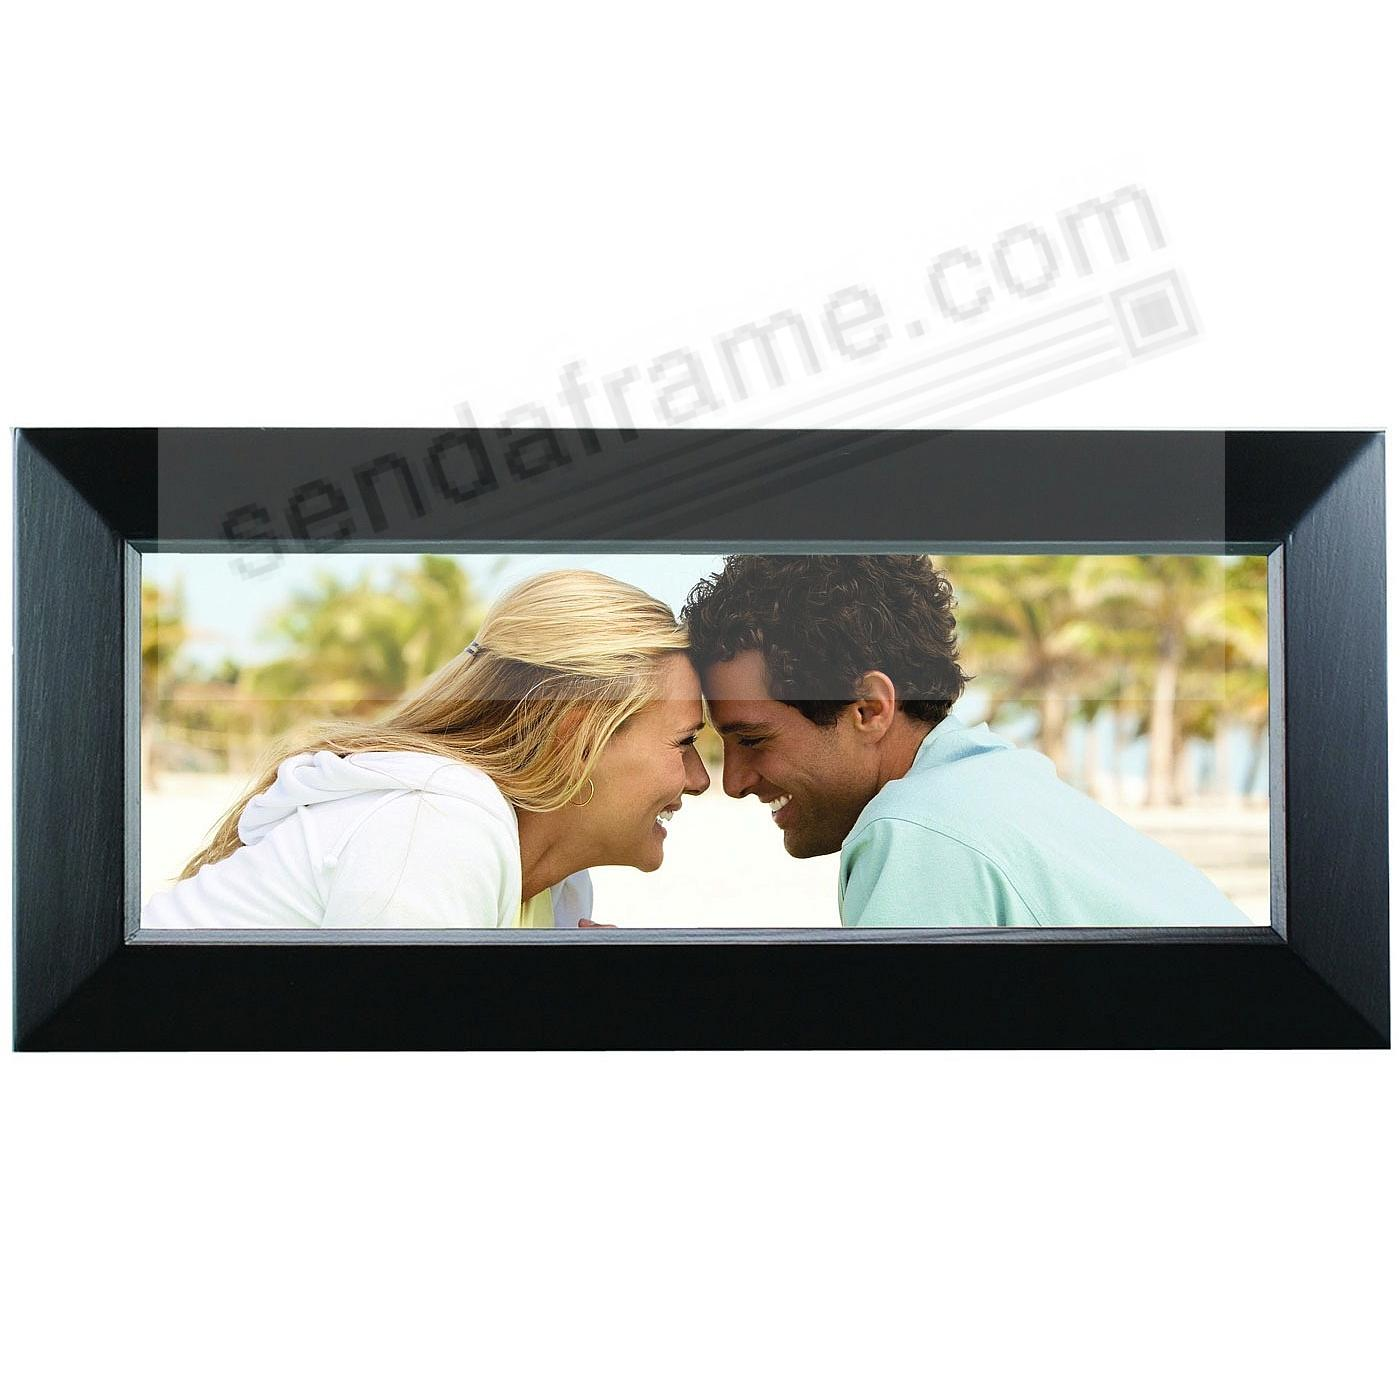 dakota ebony black panoramic pine frame by prinz